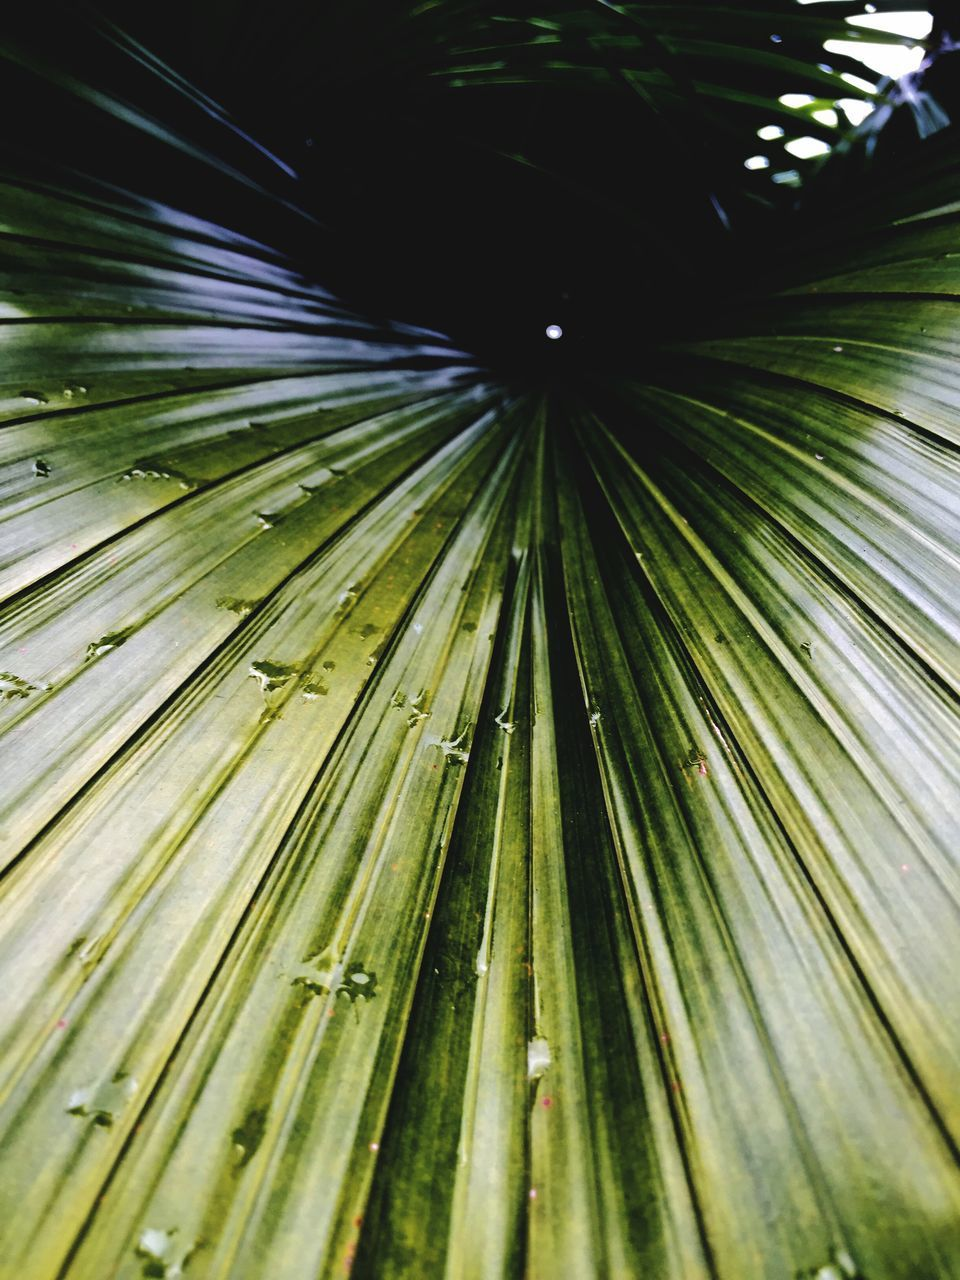 nature, green color, growth, leaf, beauty in nature, backgrounds, palm leaf, close-up, no people, full frame, day, outdoors, palm tree, frond, freshness, tree